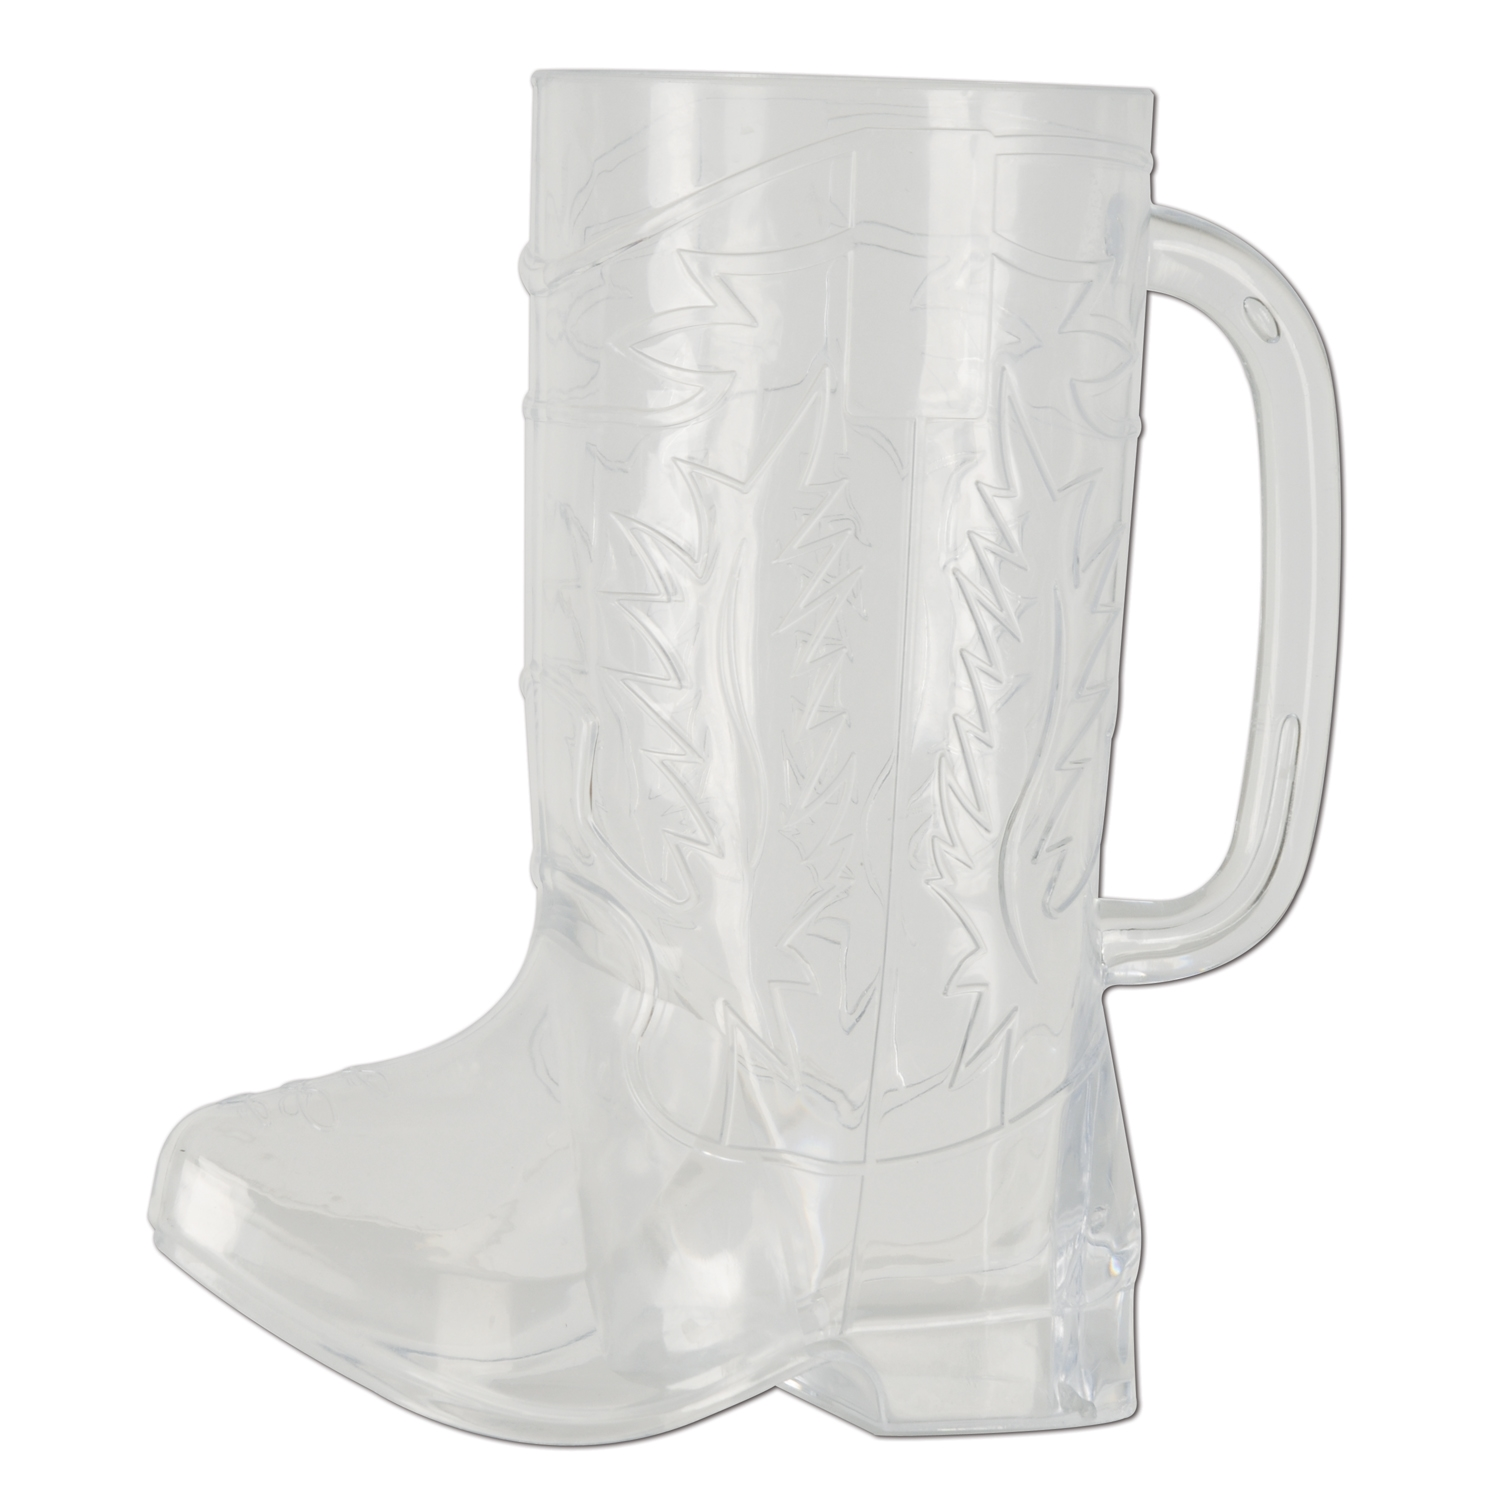 Plastic Cowboy Boot Mug (Pack of 12) Plastic Cowboy Boot Mug, cowboy, mug, western, decoration, party favor, beverage, new years eve, wholesale, inexpensive, bulk